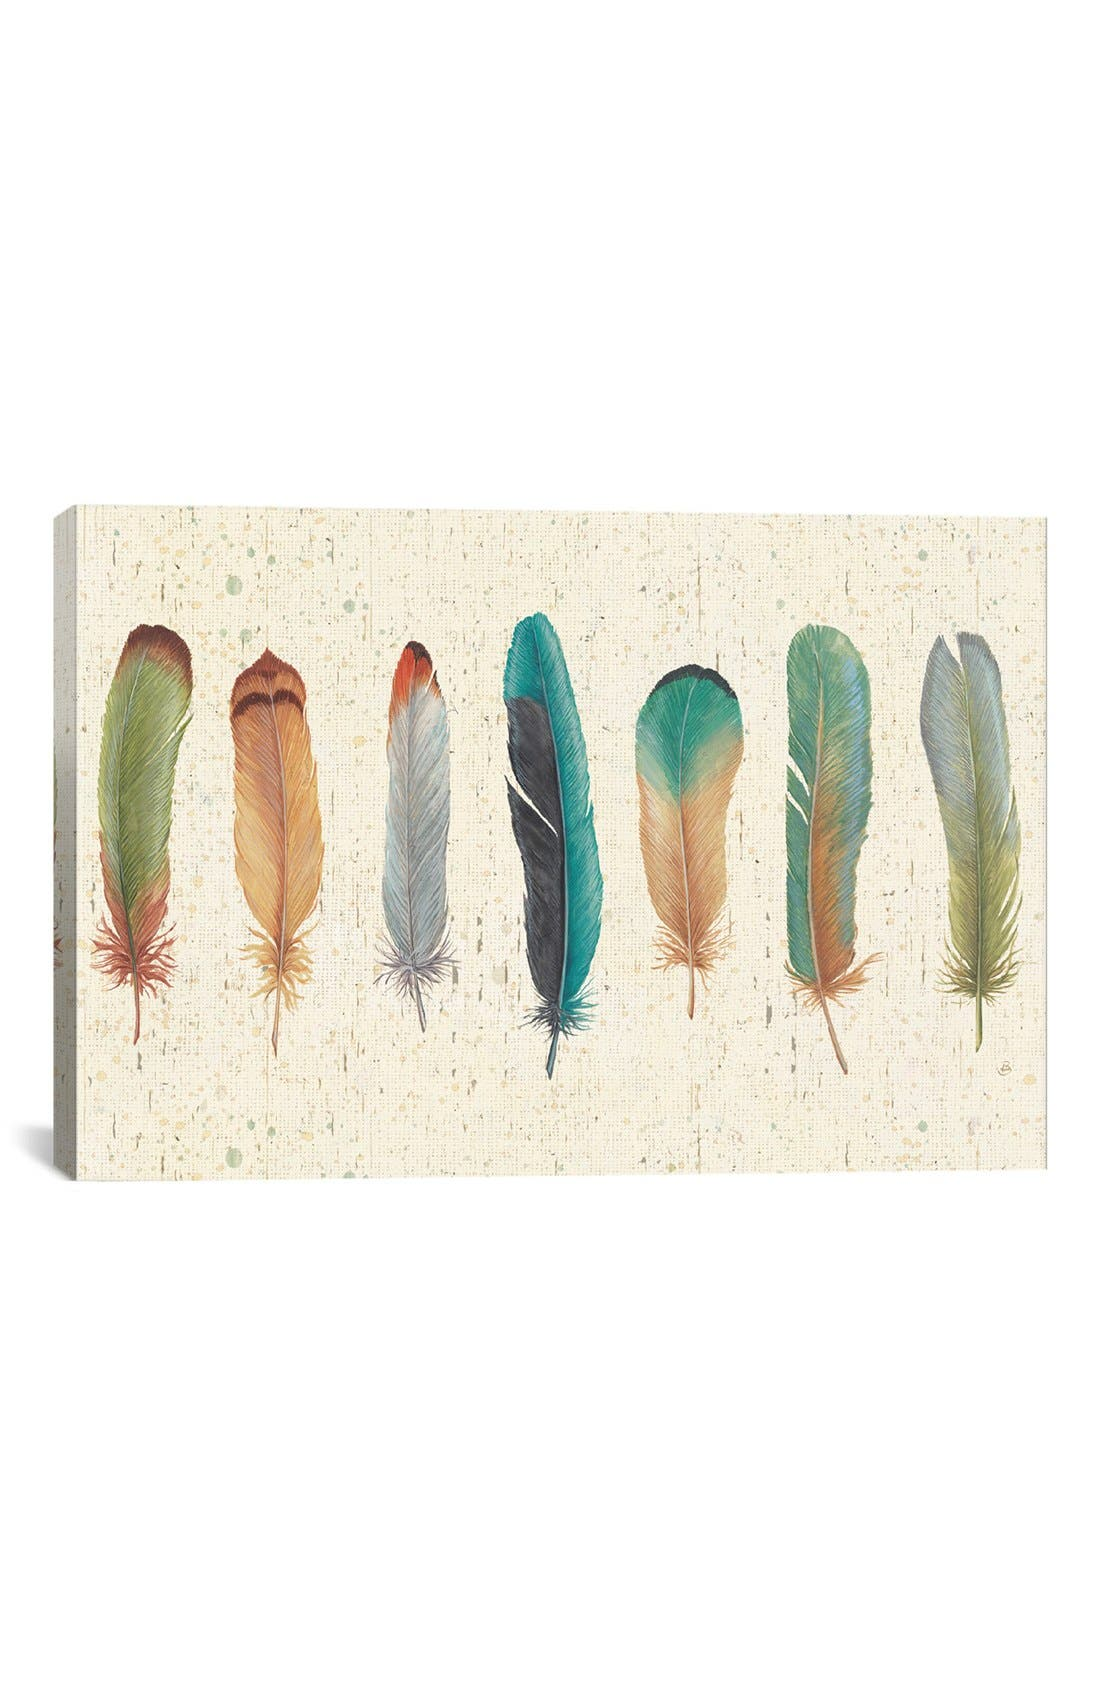 'Feather Tales VII' Giclée Print Canvas Art,                             Main thumbnail 1, color,                             250